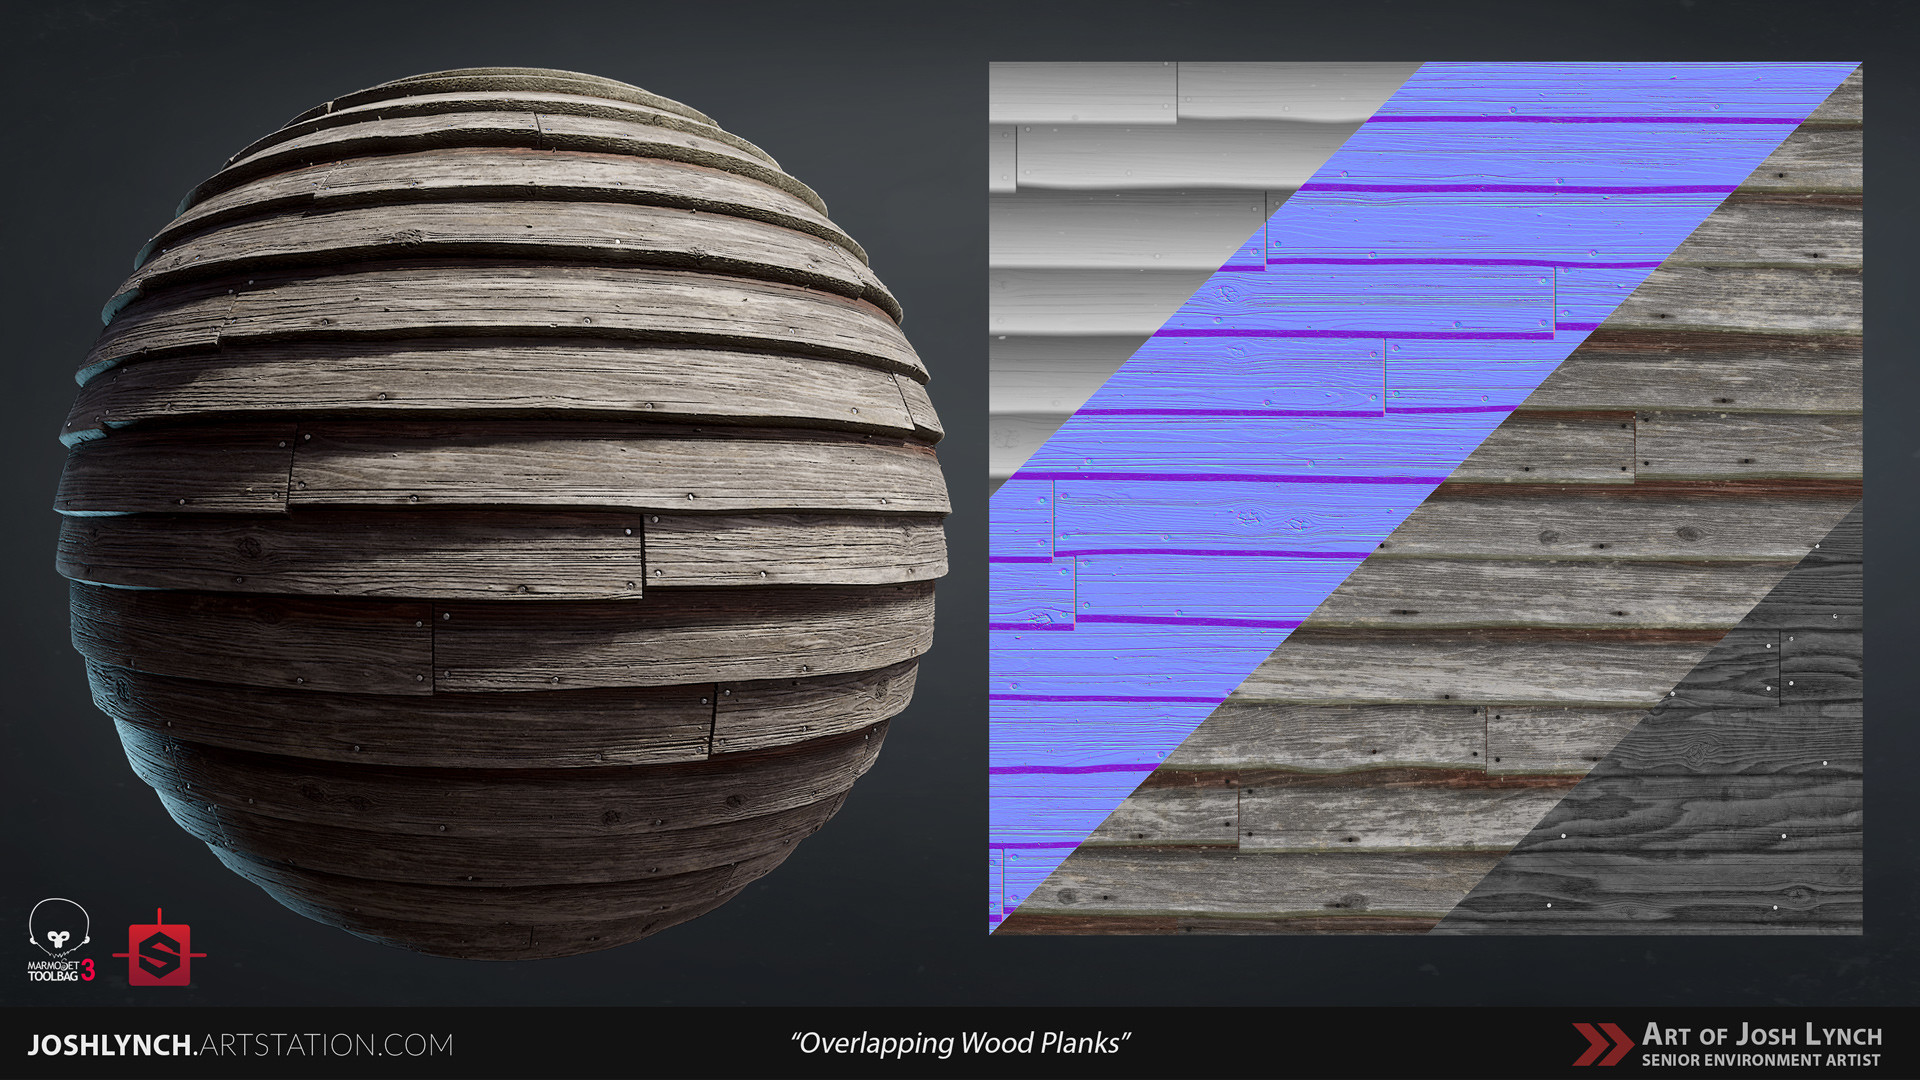 Joshua lynch wood planks overlapping 01 sphere 01